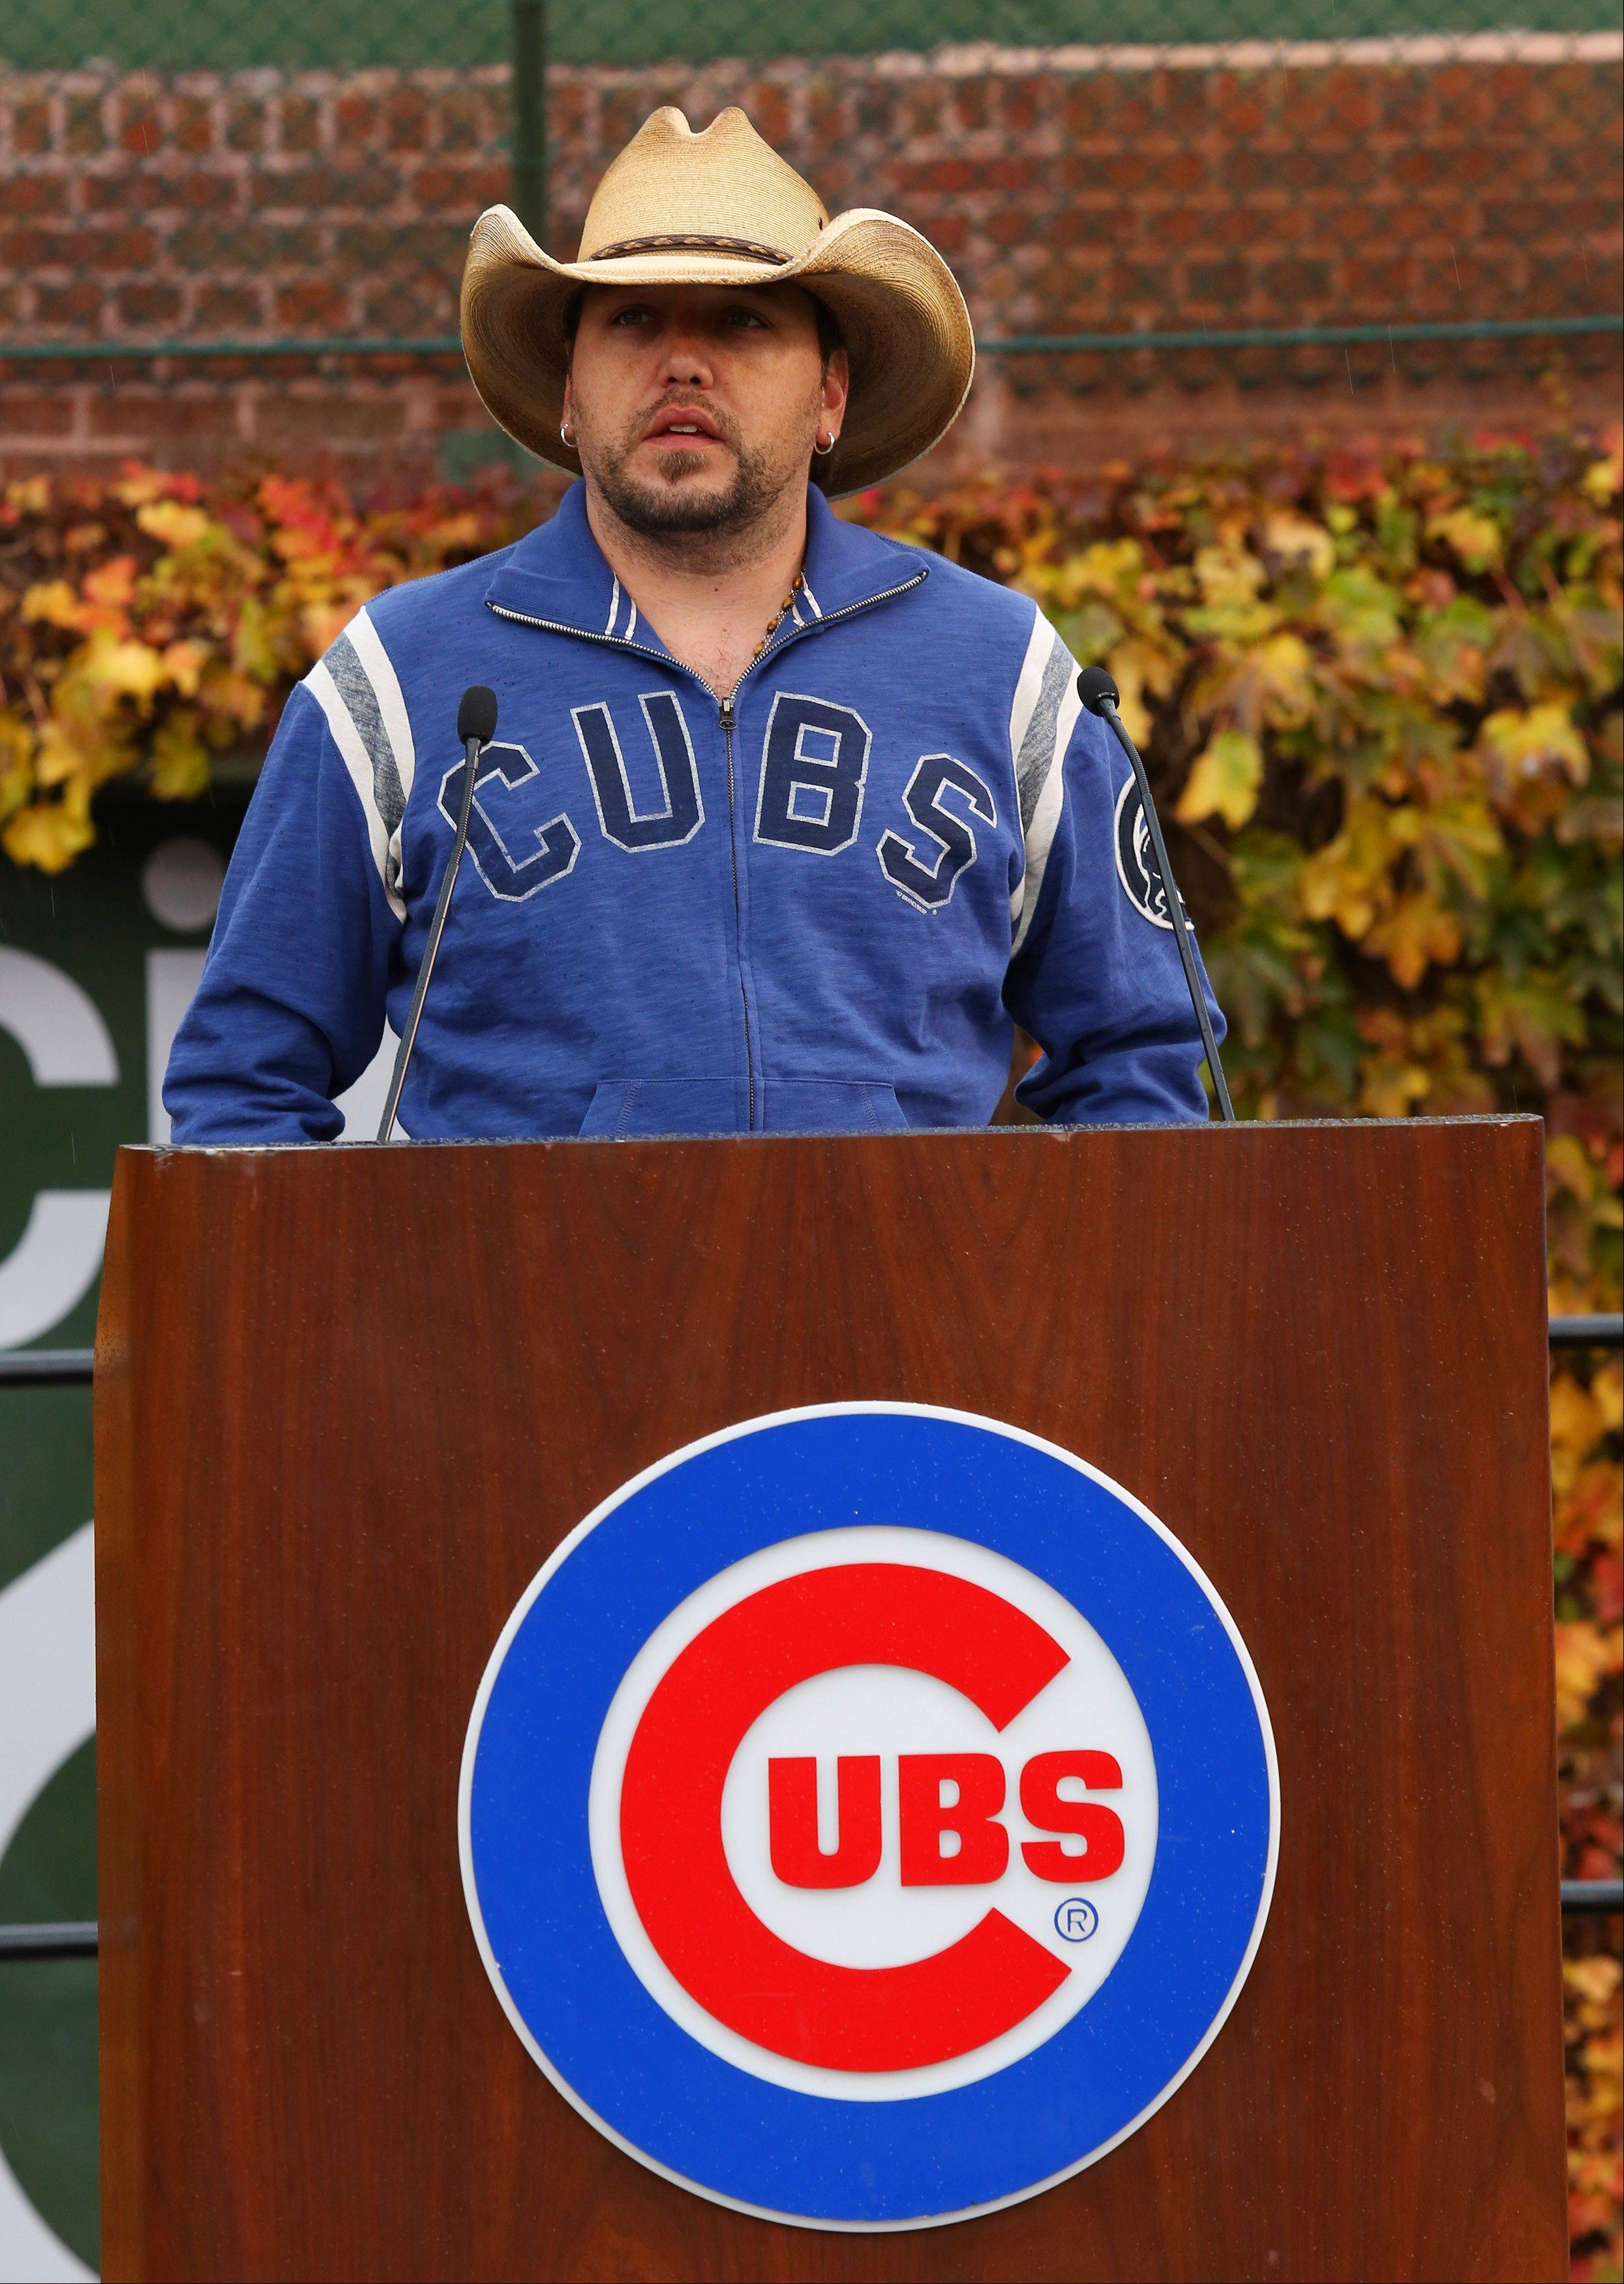 Country singer Jason Aldean speaks during a news conference at Wrigley Field to announce his 2013 Night Train Tour will be coming to Chicago.